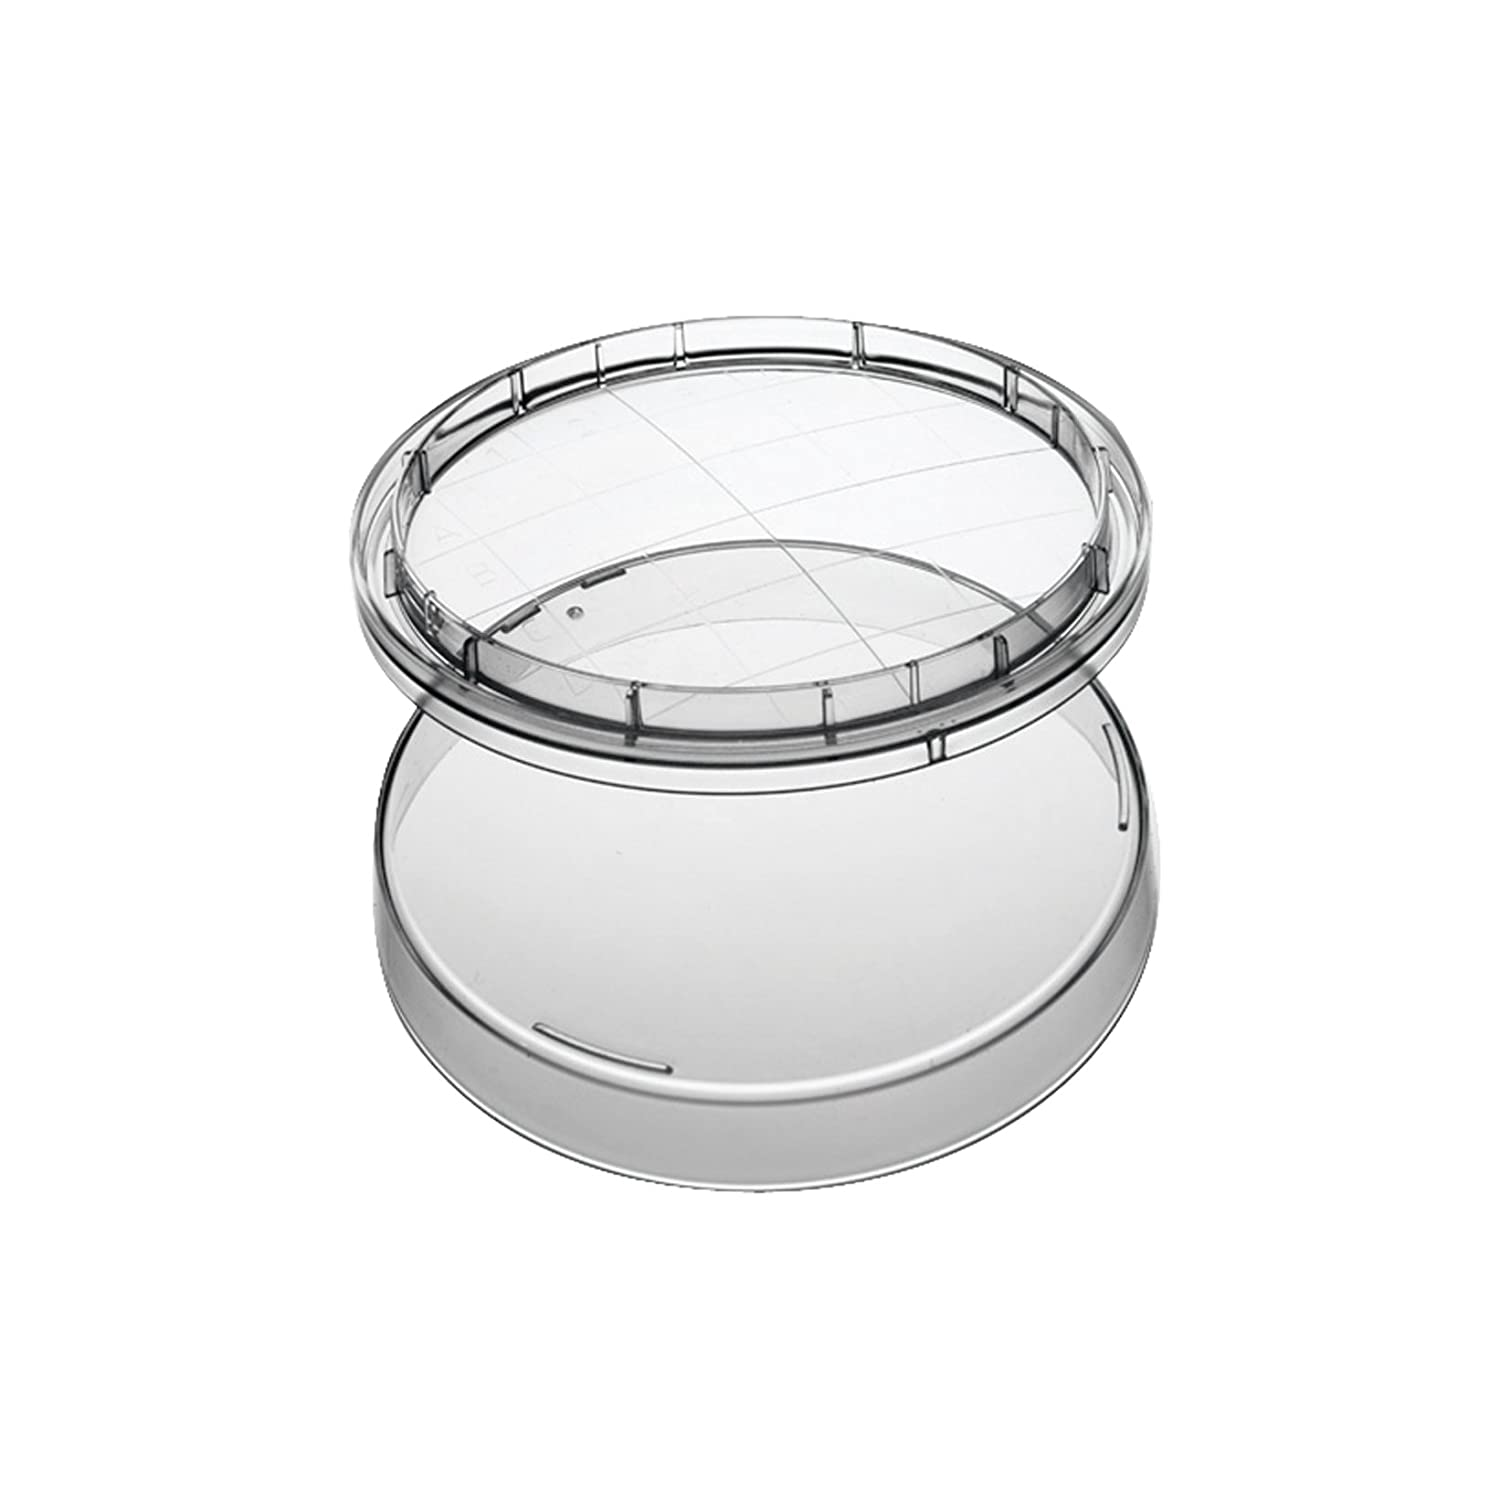 Gosselin BB64-02 Polystyrene Round Max 88% OFF Domed outlet Dish Aseptic Ve Petri